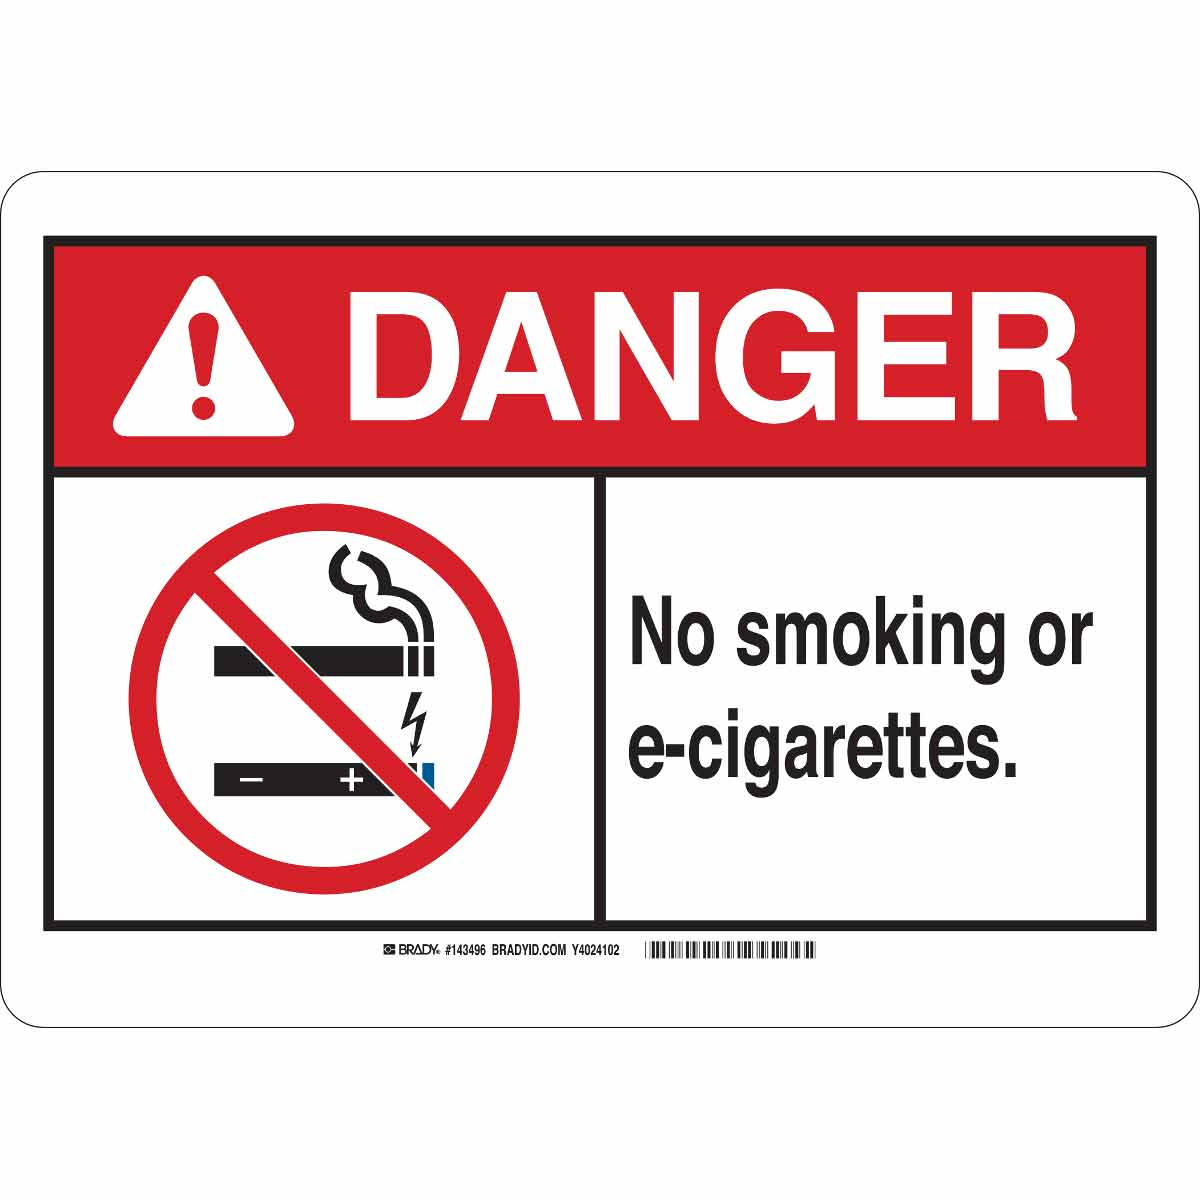 e cigarettes and their hazard The number of calls to poison centers involving e-cigarette liquids containing nicotine rose from one per month in september 2010 to 215 per month in february 2014, according to a cdc study published in today's morbidity and mortality weekly reportthe number of calls per month involving conventional cigarettes did not show a similar increase during the same time period.